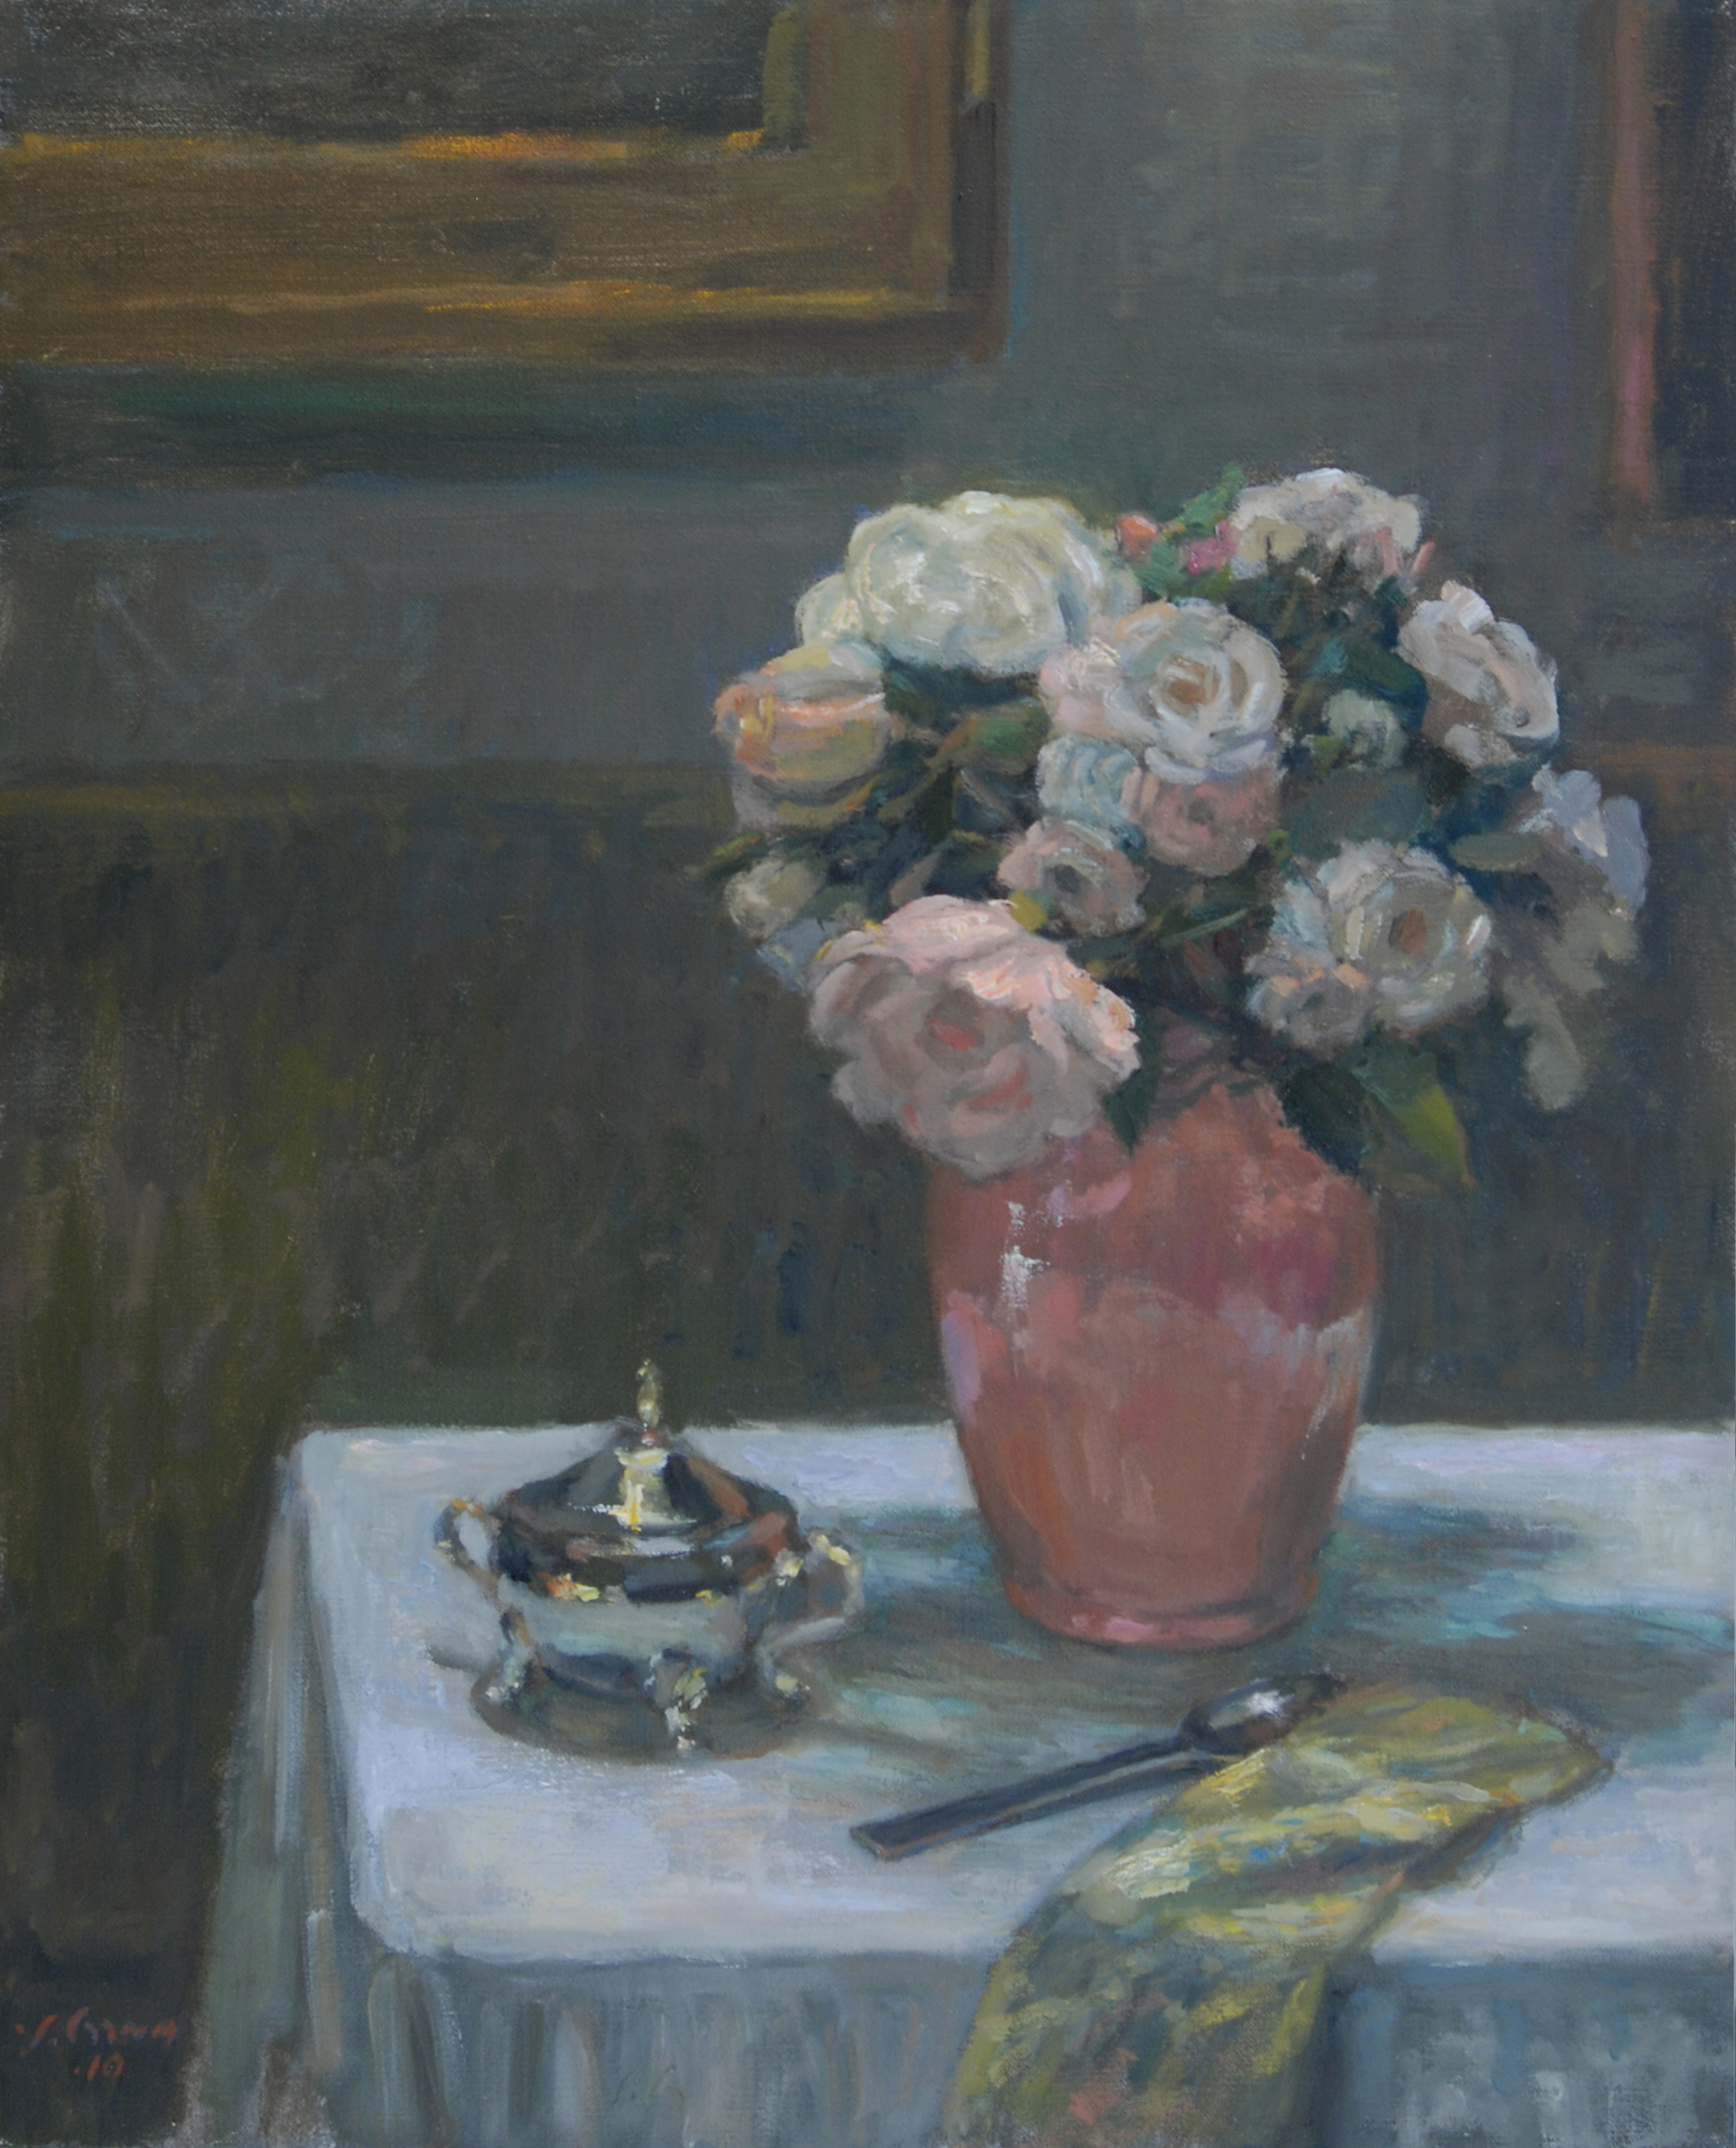 Pink Vase, Oil on linen, 20x16 inches.